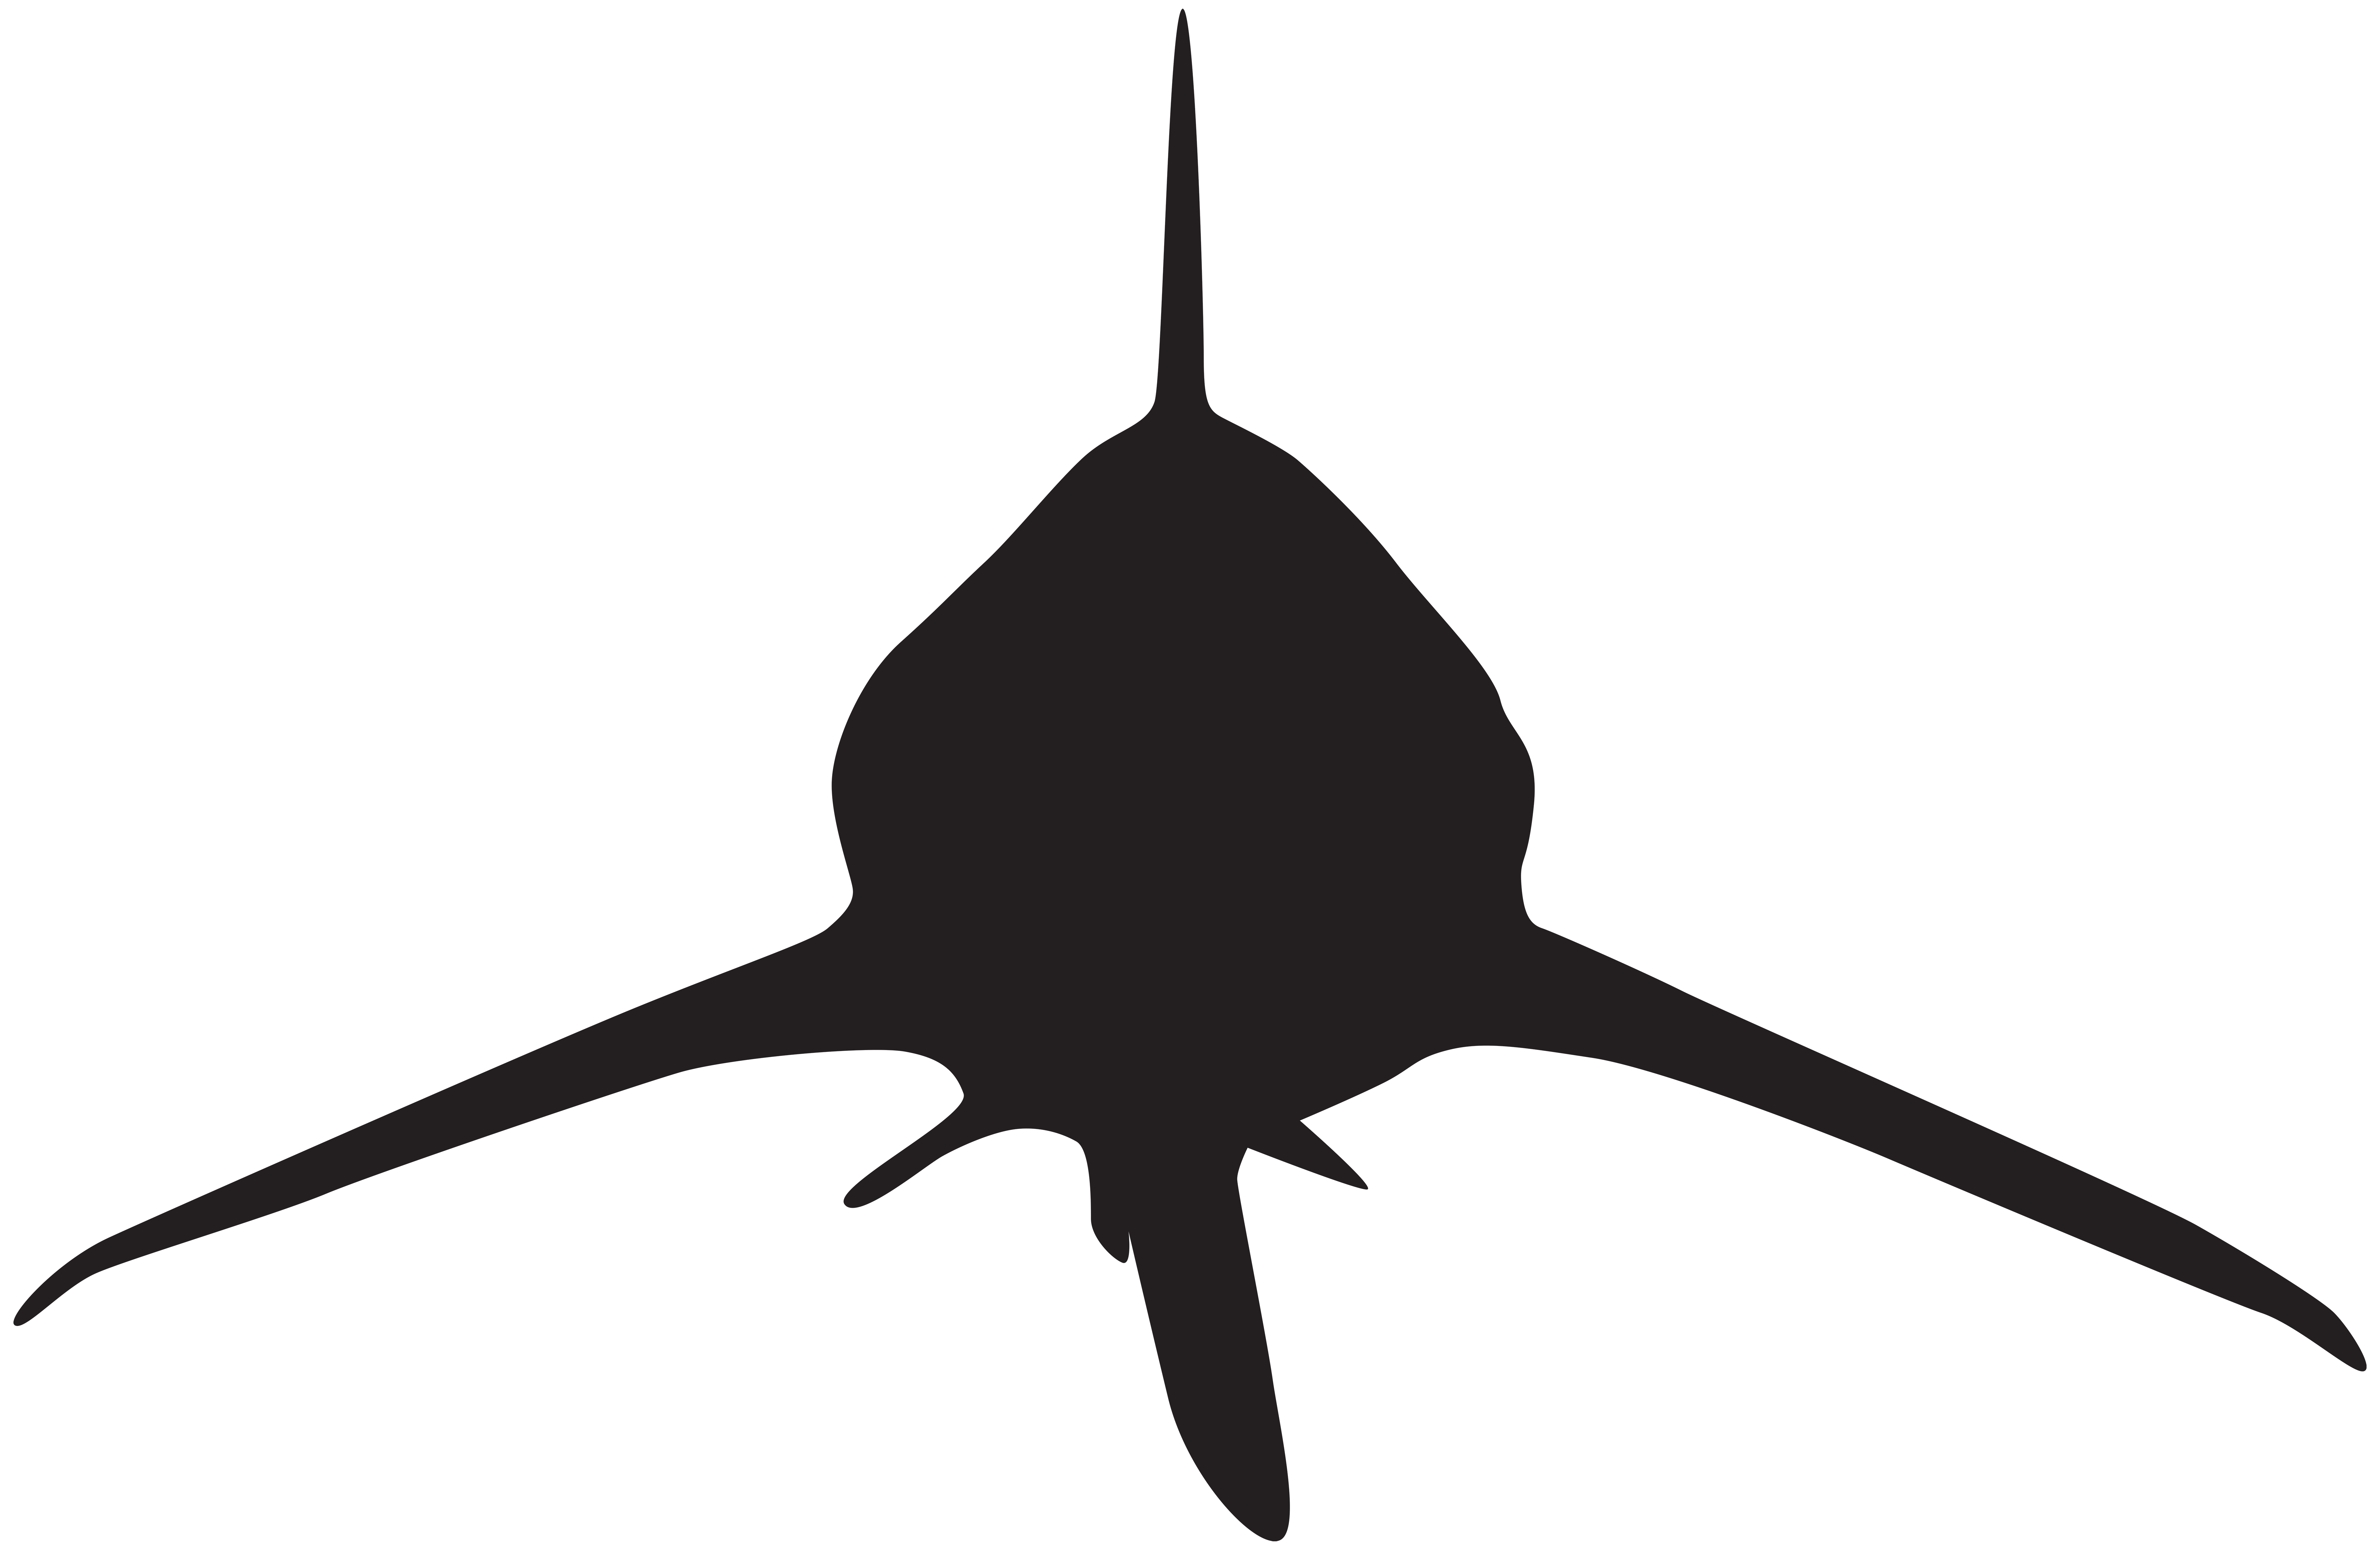 Clipart shark clip art. Attack silhouette png image